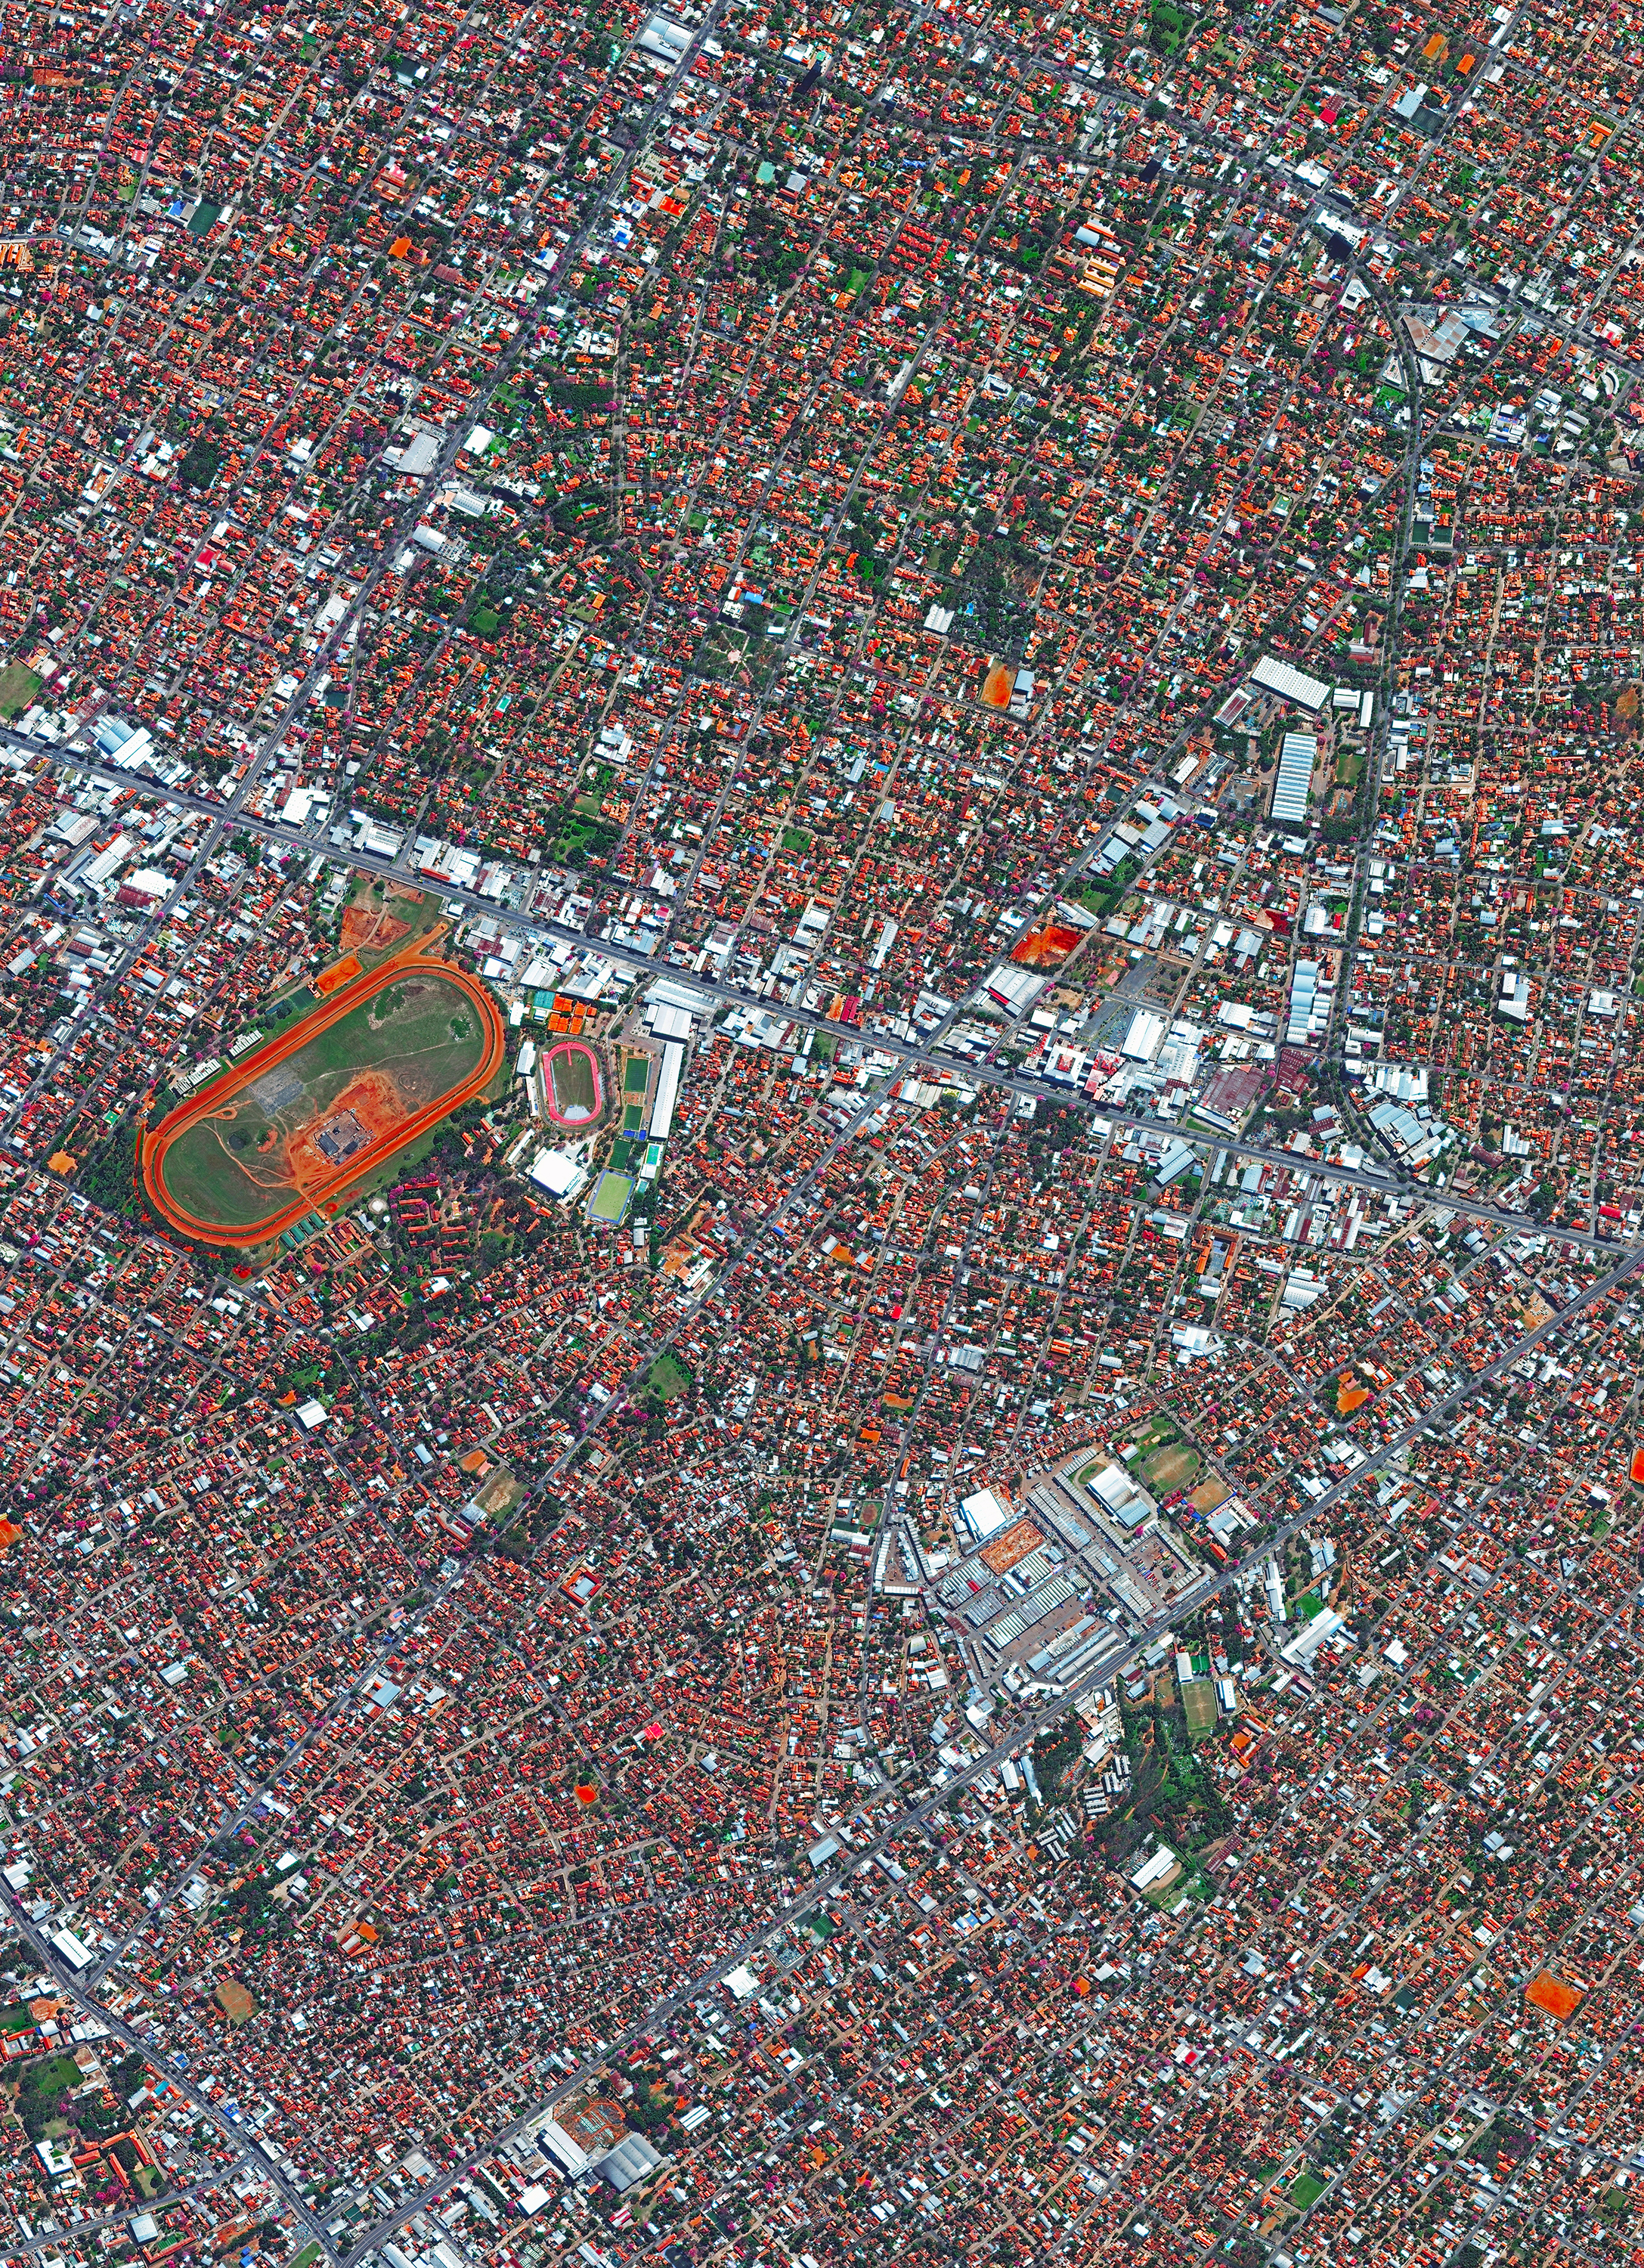 """Asunción is the capital and largest city of Paraguay, with nearly 2.2 million people living in its metropolitan area. Known as """"the Mother of Cities,"""" it is one of the oldest cities in South America and the longest continually inhabited area in the Río de la Plata Basin. Shown on the left side of this Overview is the Hipódromo de Asunción, an 80,000-seat horse racing track and popular concert venue.  25°18'00.0""""S, 57°38'00.0""""W  Source imagery: DigitalGlobe"""